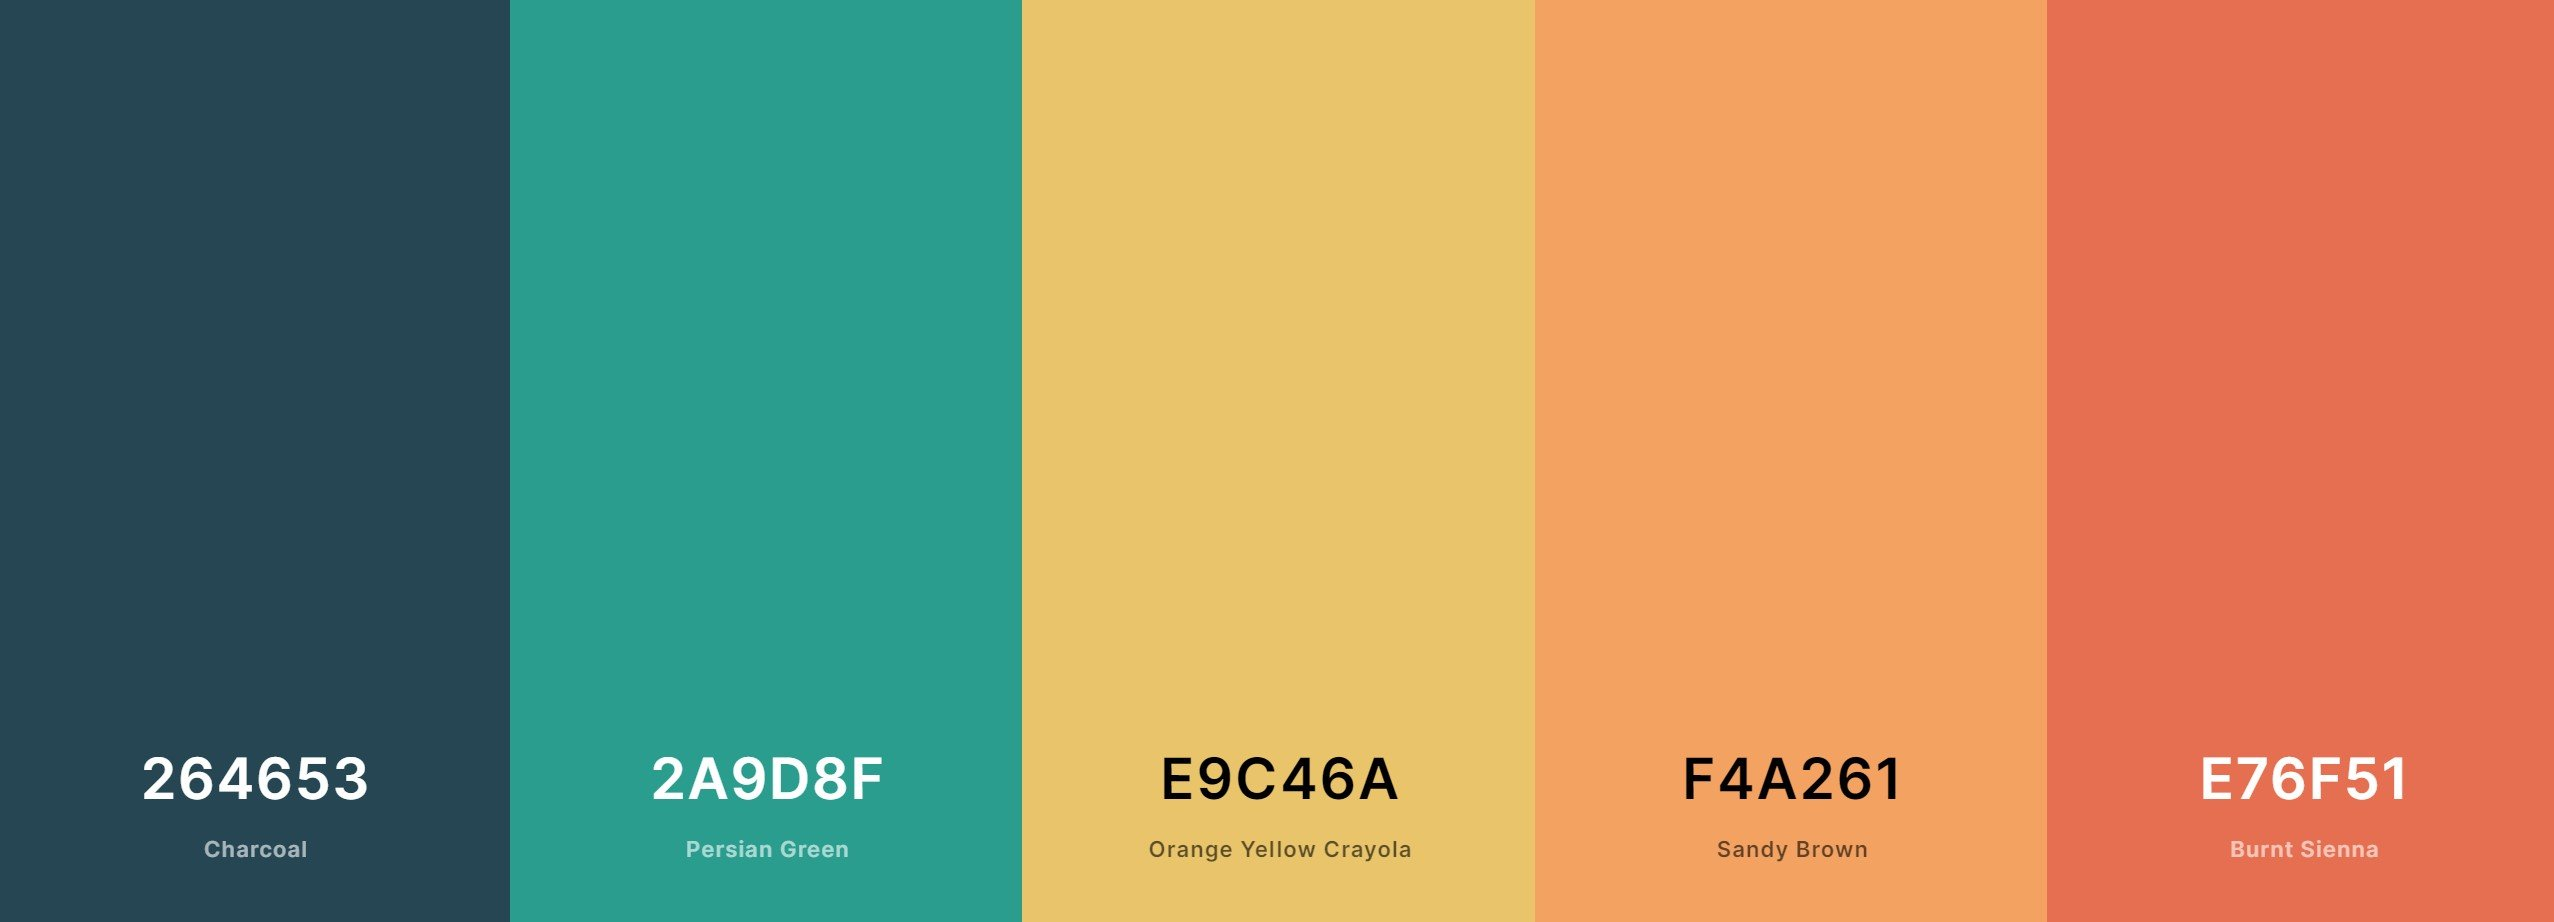 Use complementary colors on your website